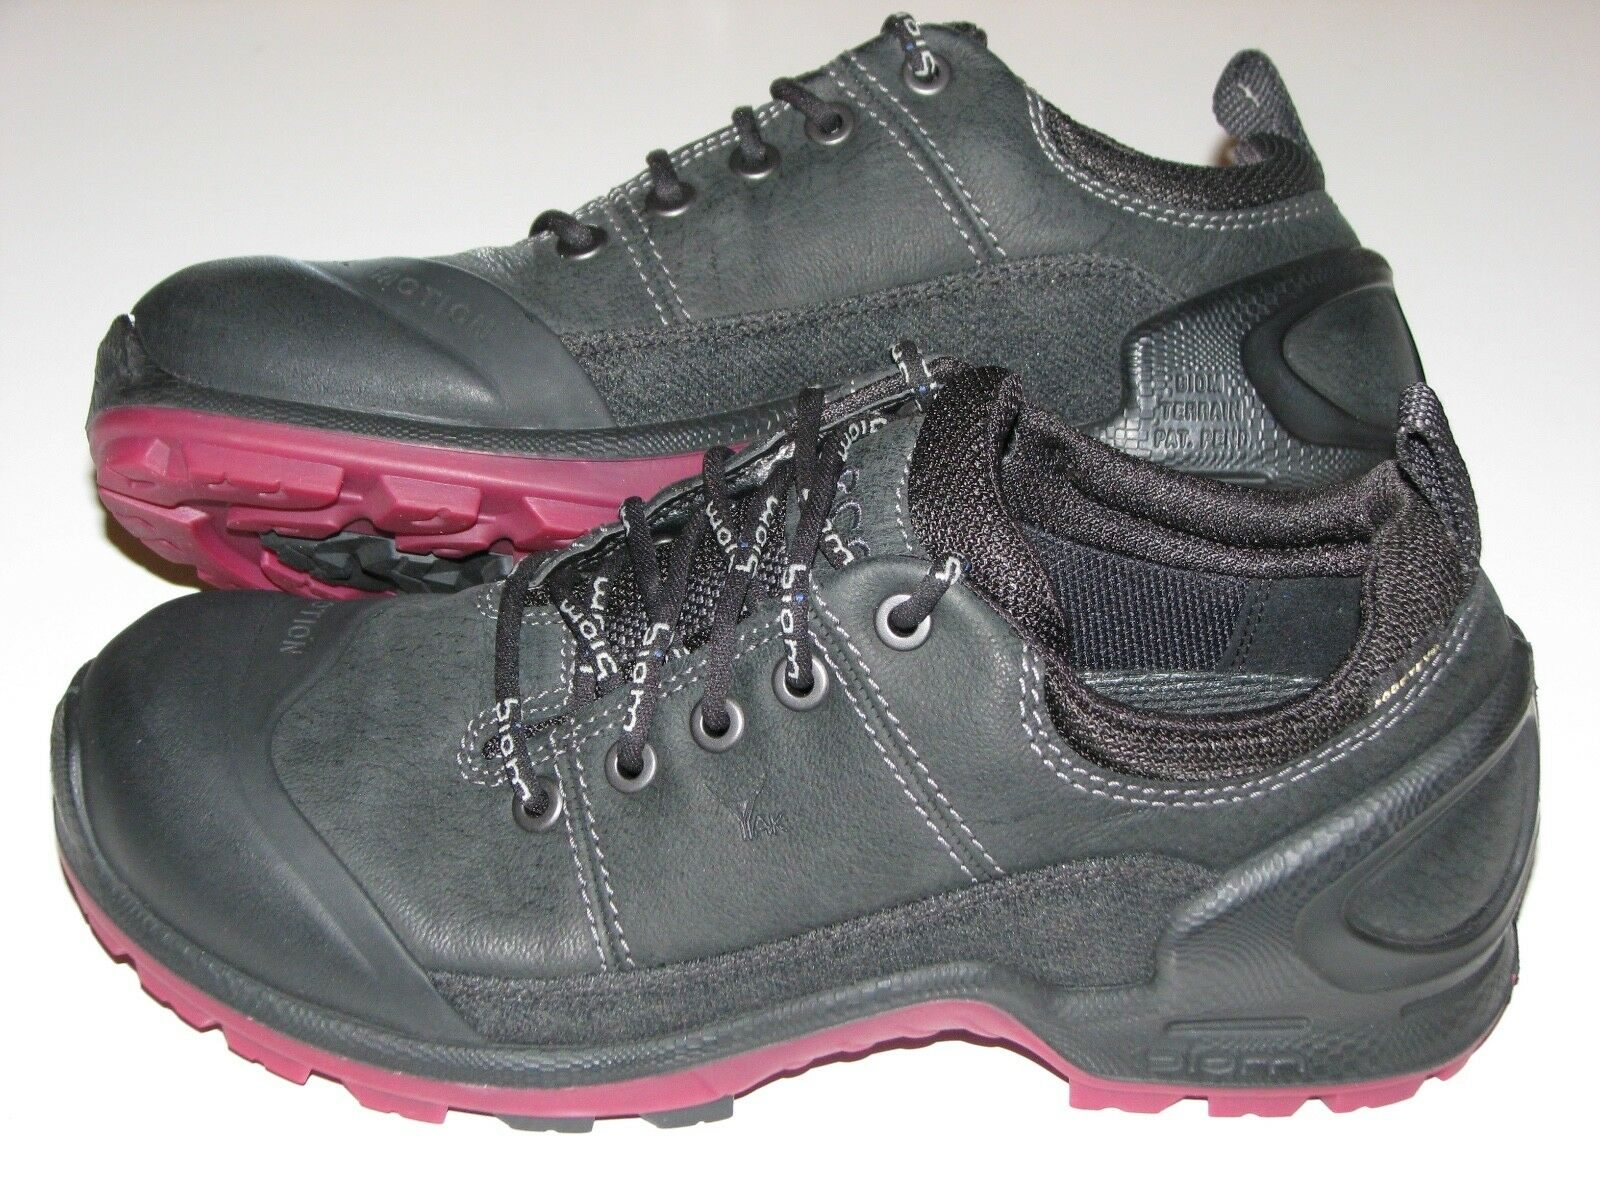 Ecco Biom Terrain Gore-Tex Trail Hiking shoes sz 37 Euro, Women's sz 6.5M